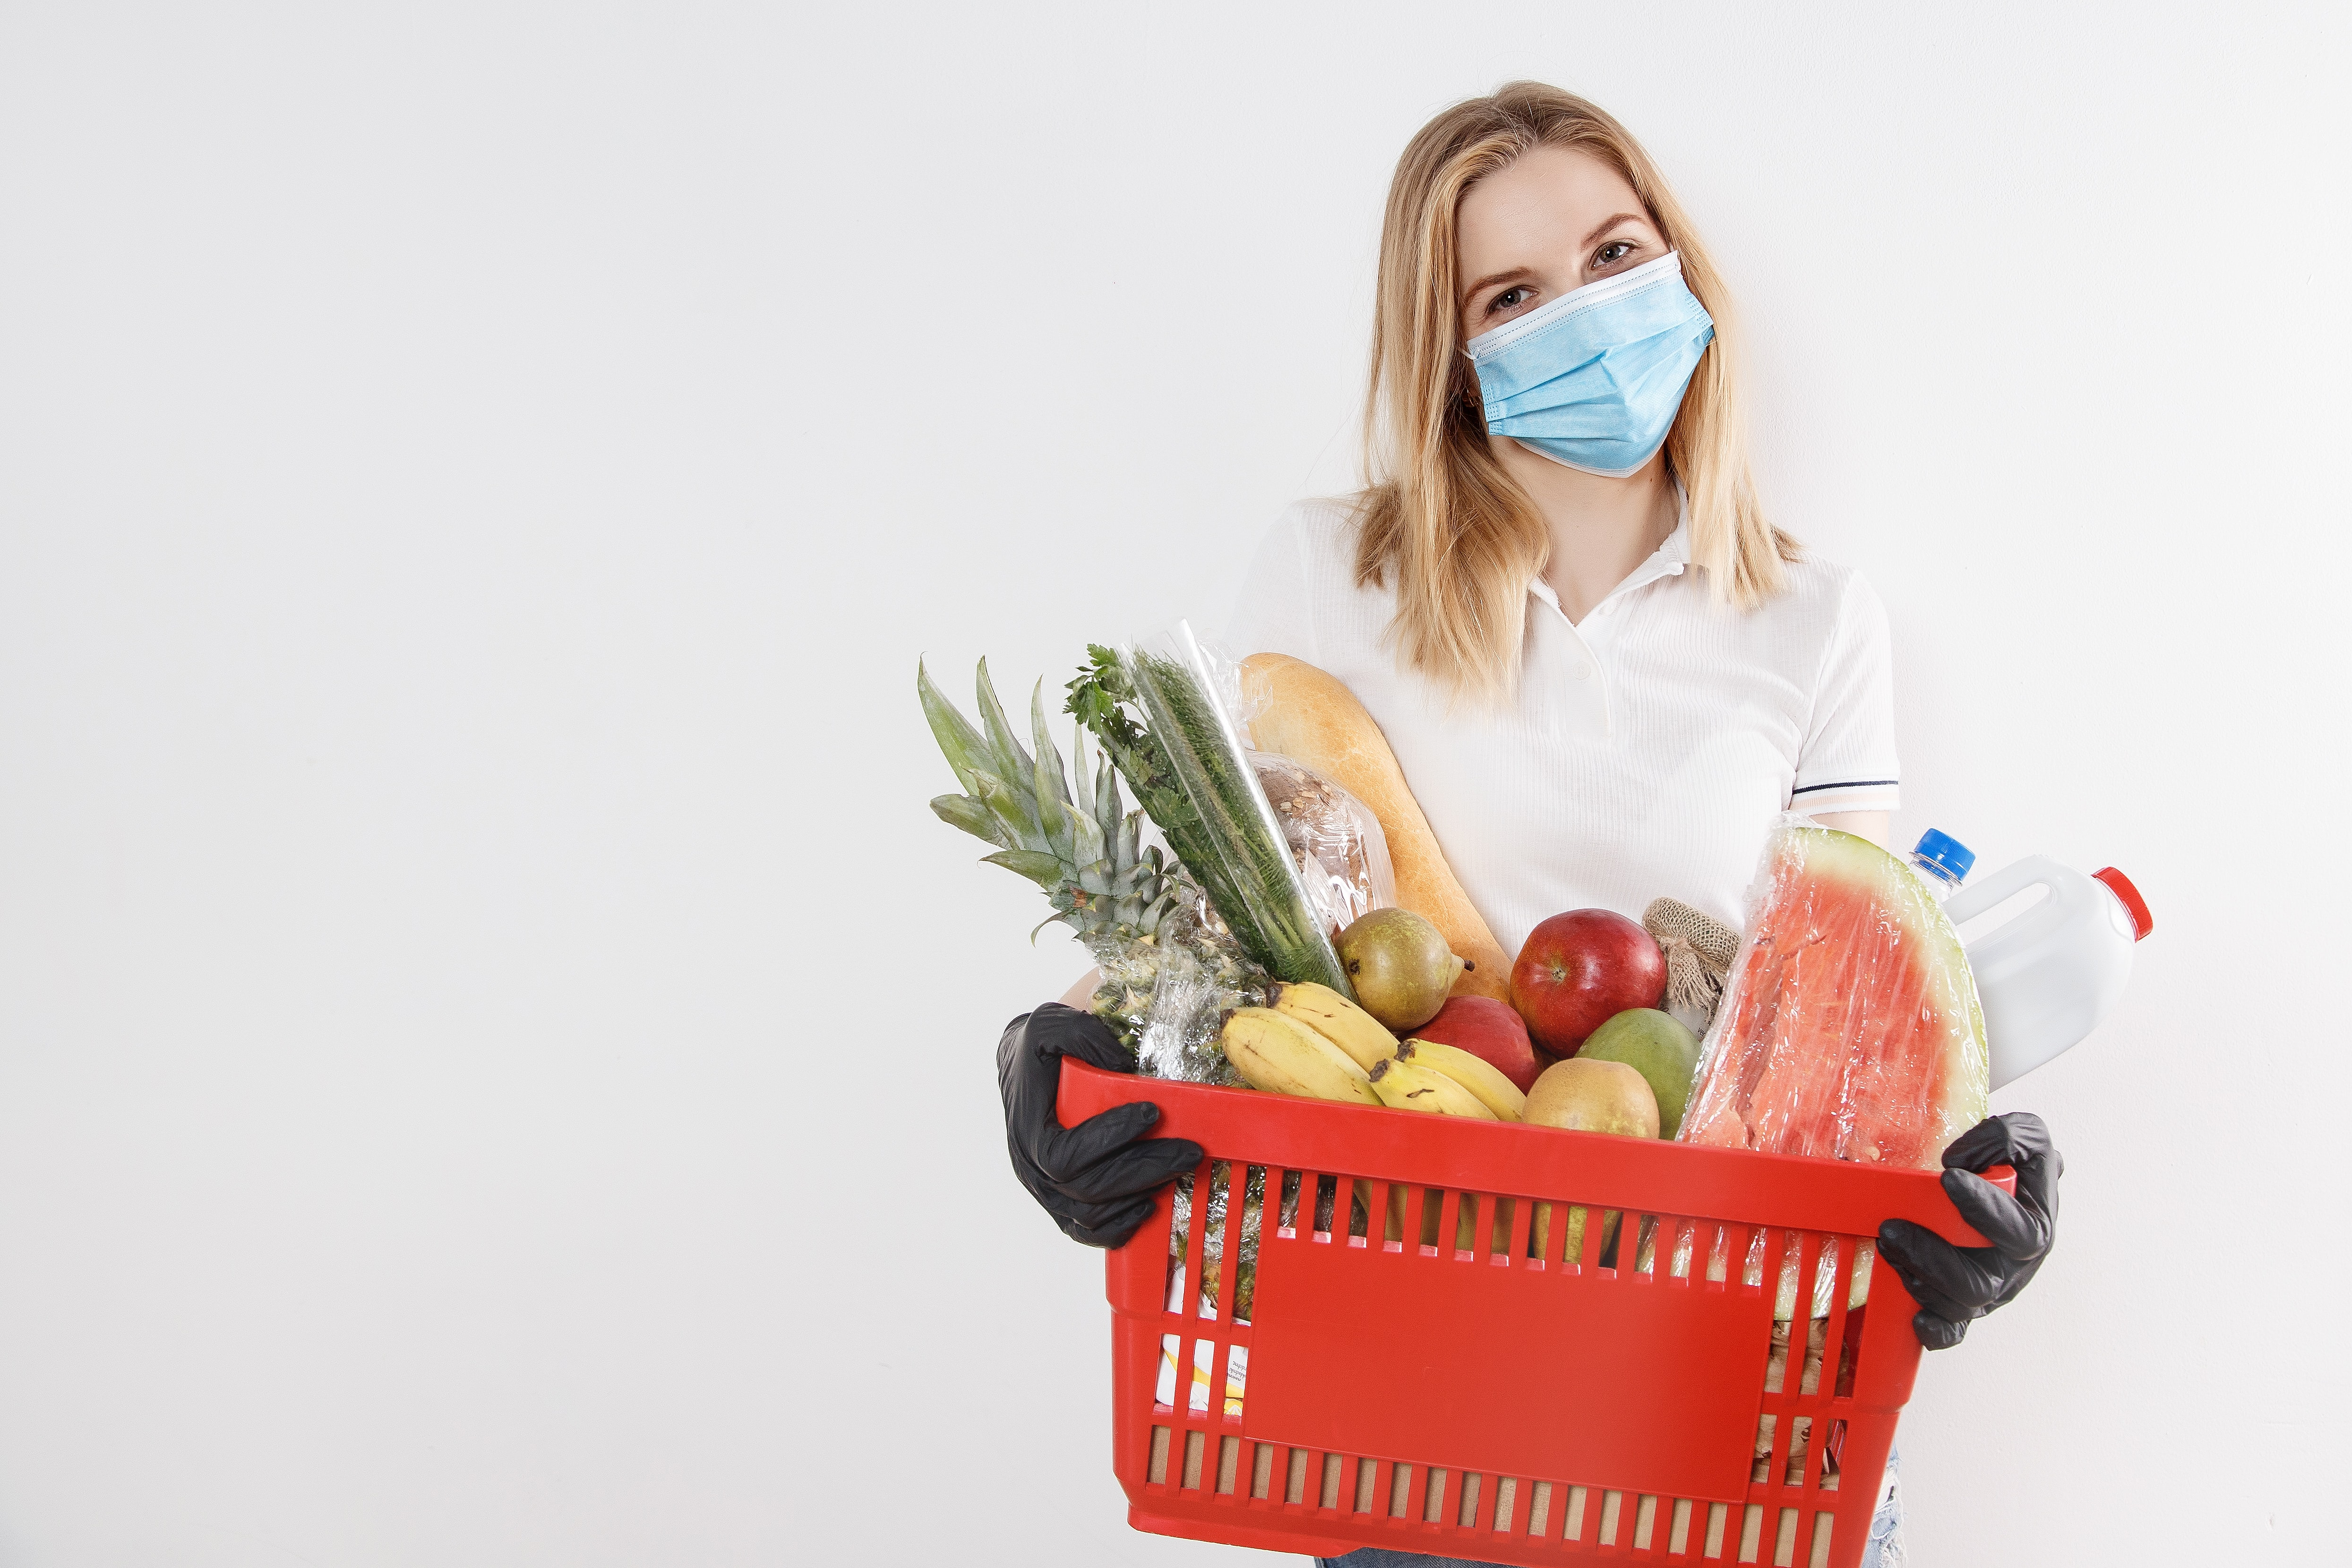 Woman wearing a mask and gloves. Carrying grocery basket with produce.